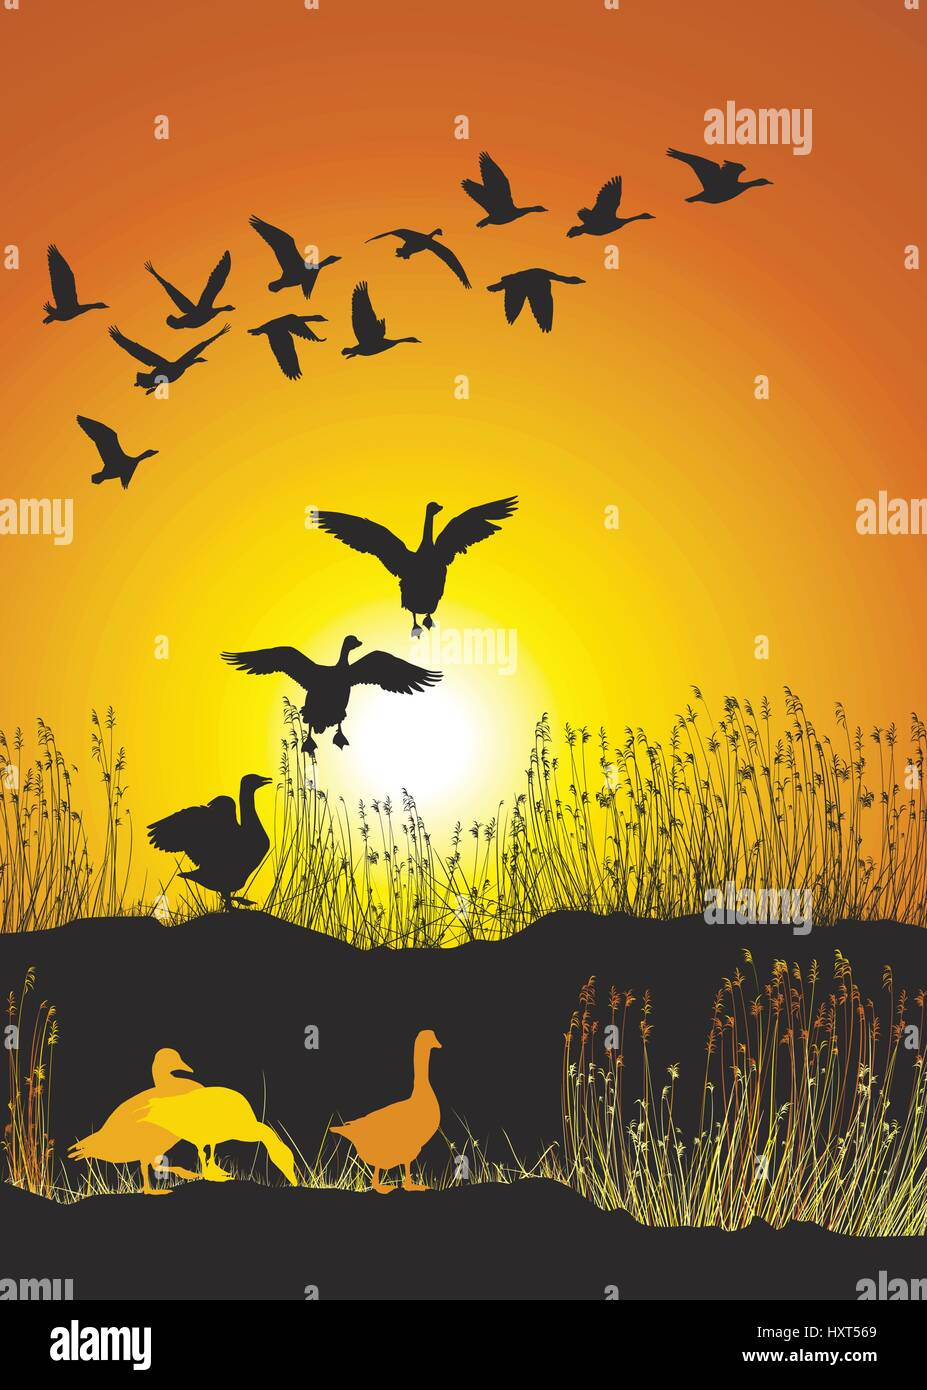 Flying Geese Art Stock Photos & Flying Geese Art Stock Images - Alamy